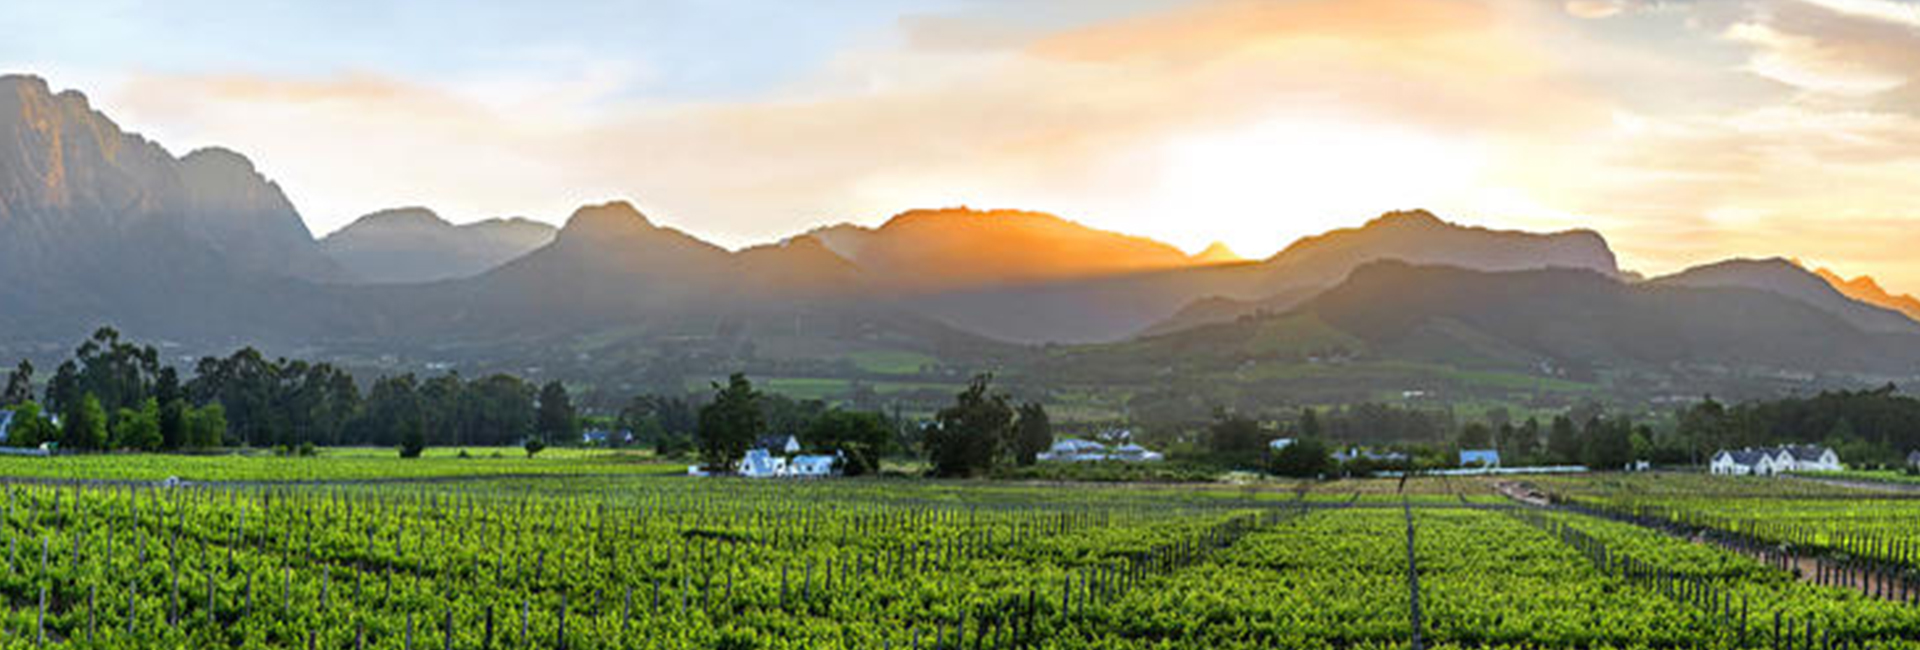 Luxury Golf And Wine Tour South Africa Franschoek 2